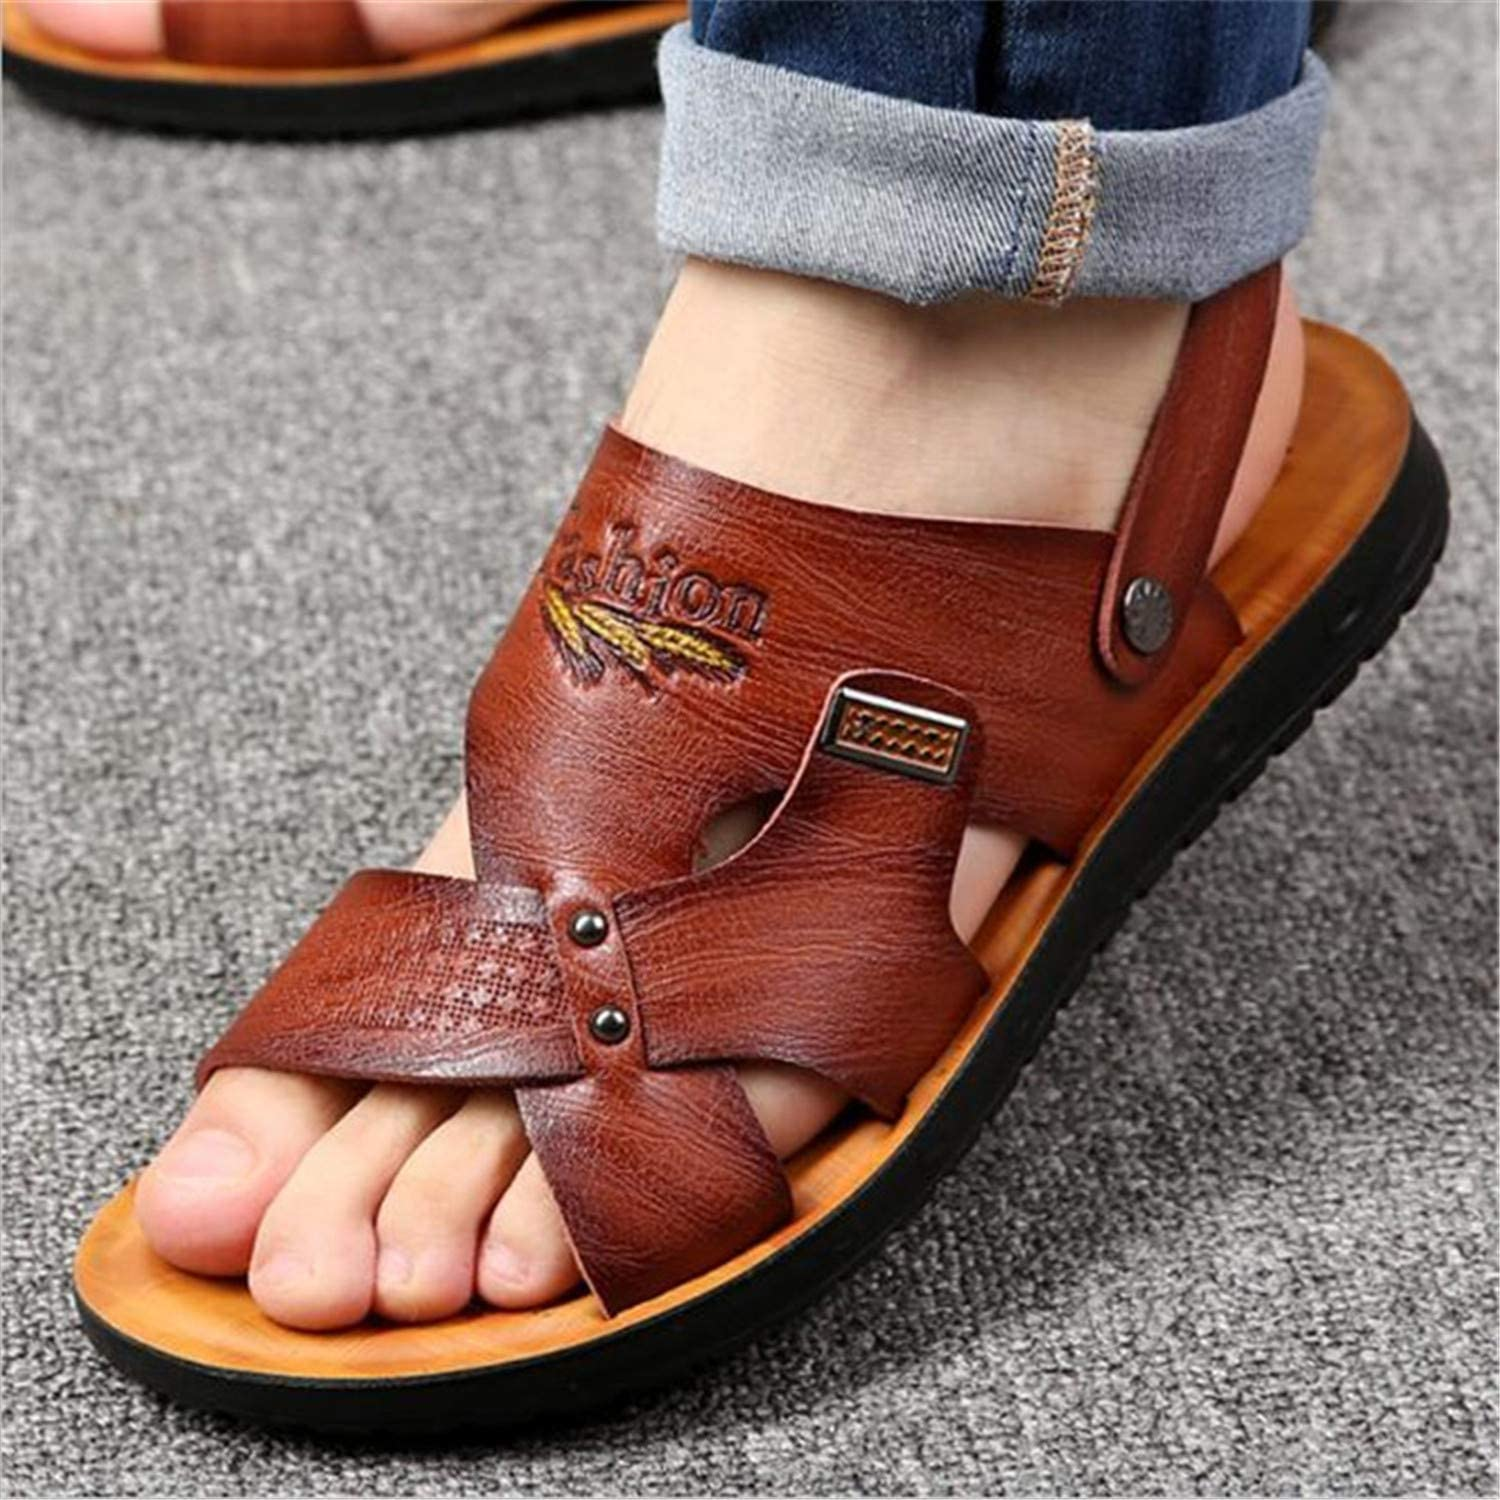 New 1Beach Shoes Mens Trend Casual Non-Slip Sandals Mens Sandals Slippers